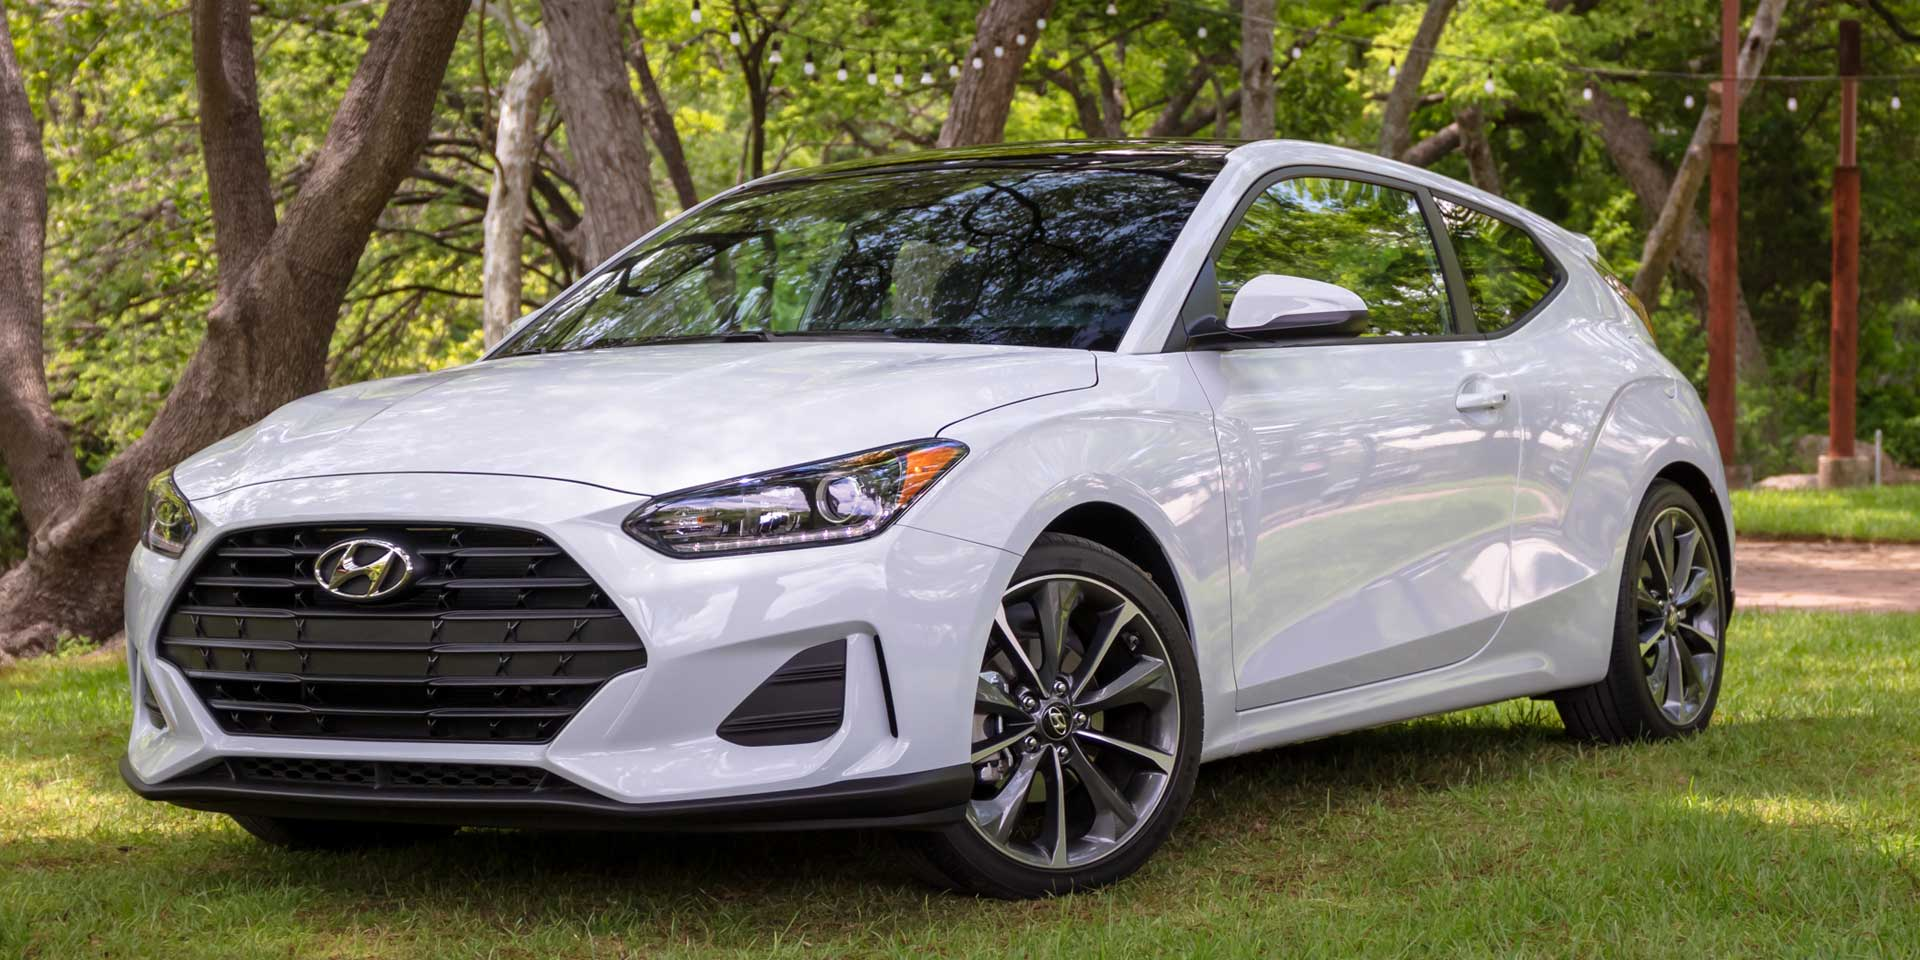 59 All New 2020 Hyundai Veloster Review and Release date